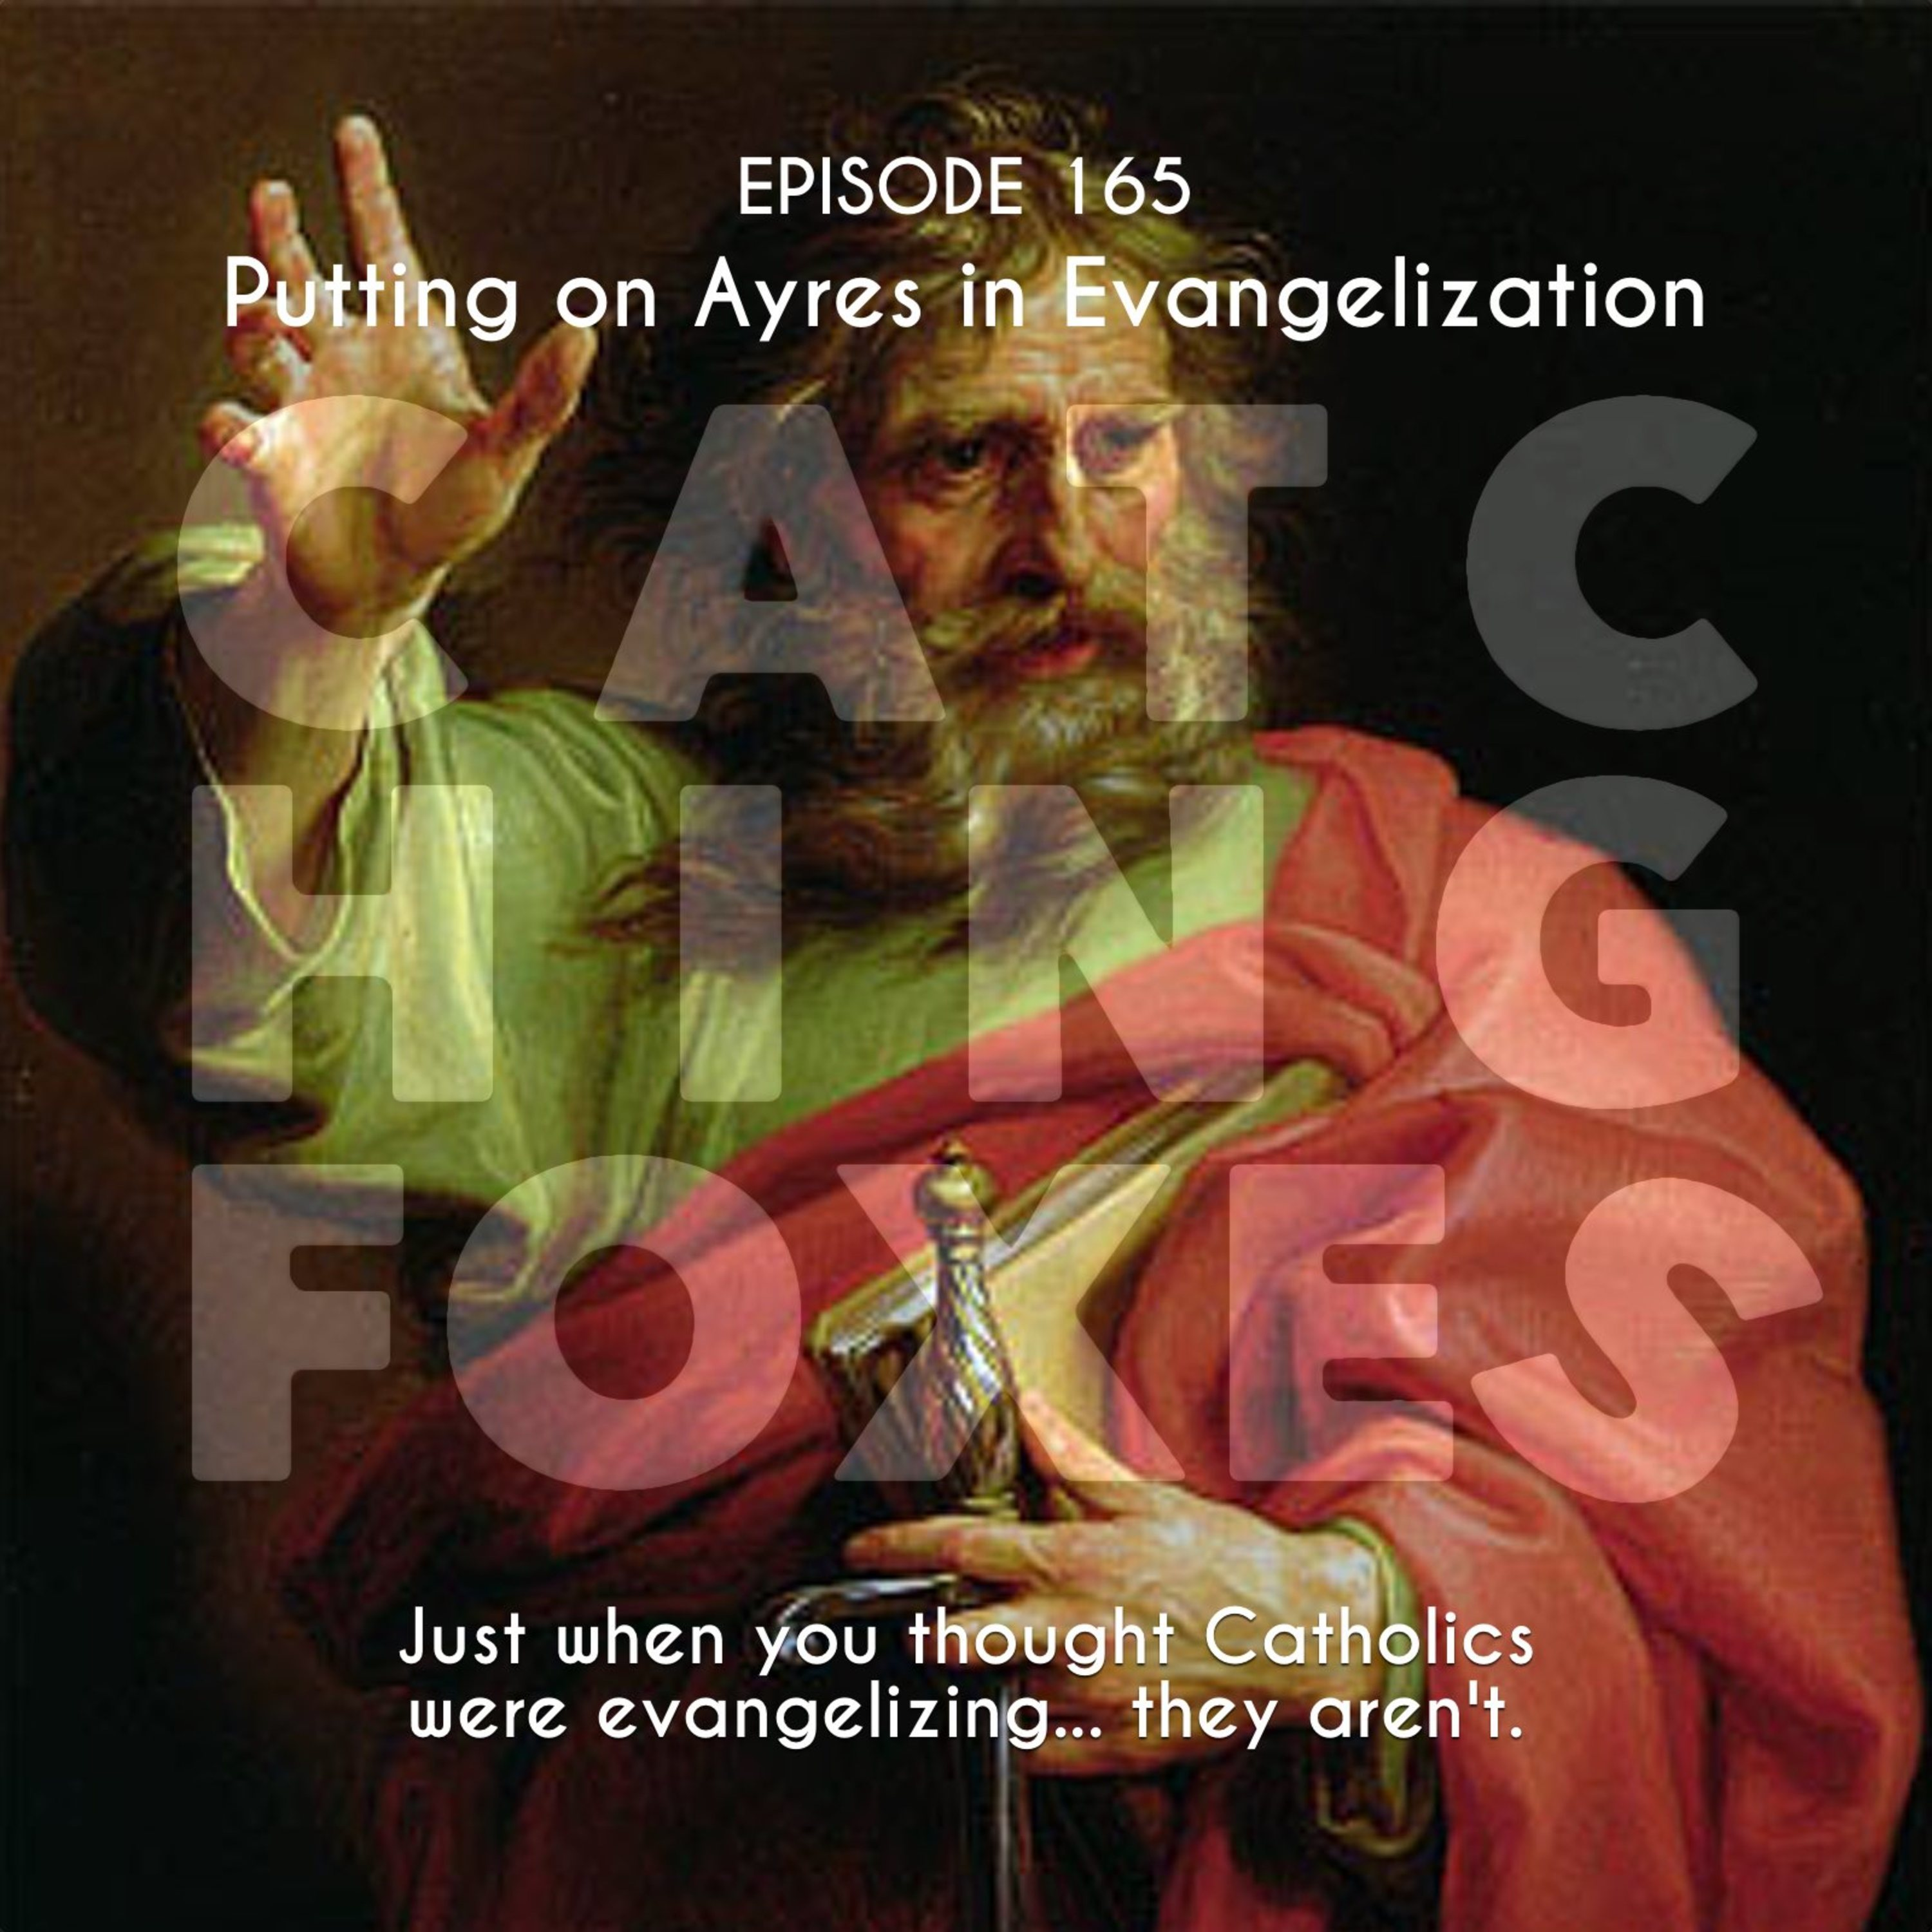 Putting on Ayres in Evangelization